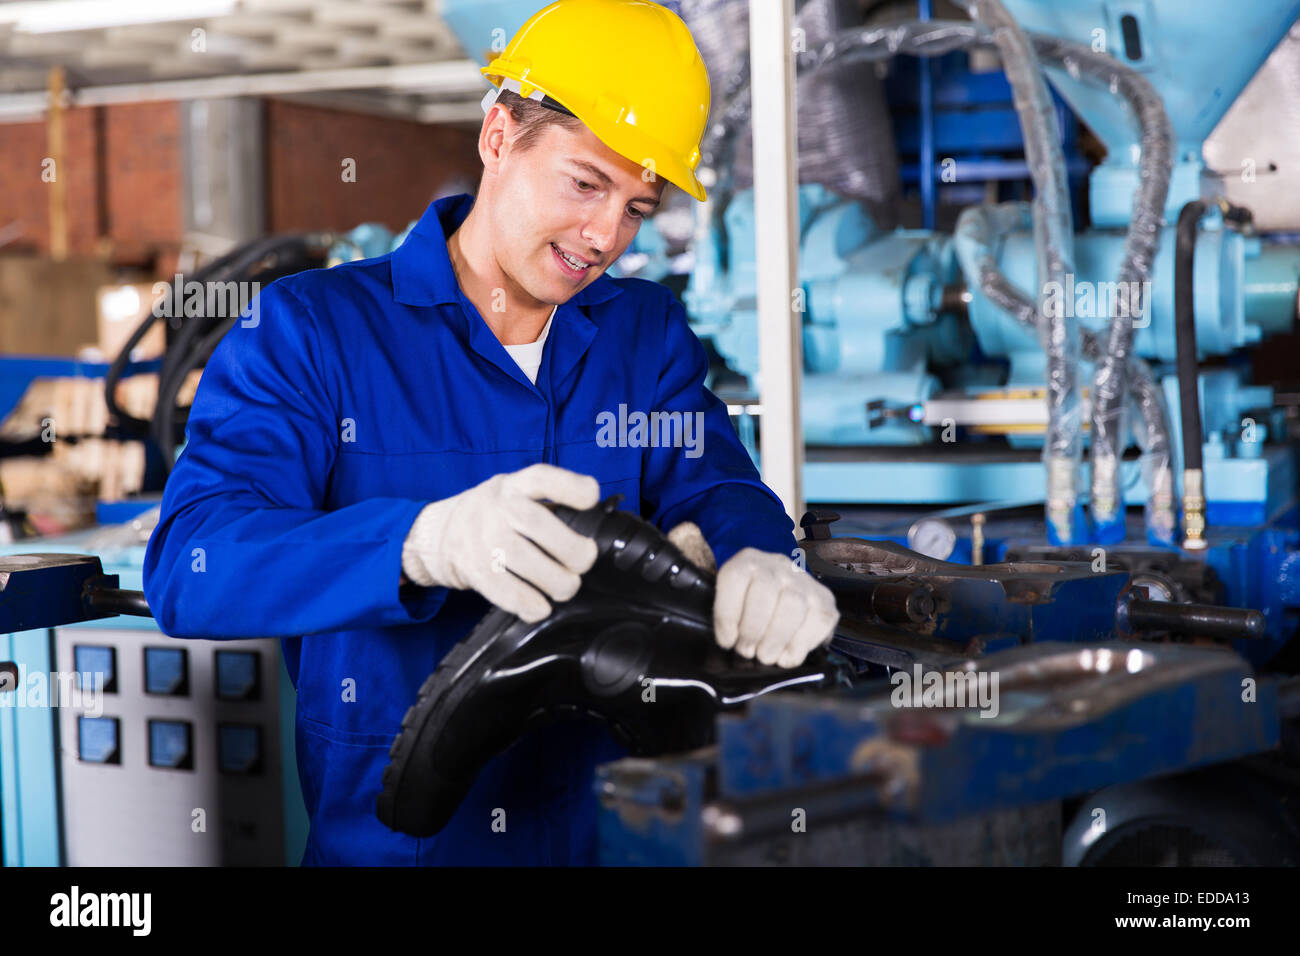 skilled man working in a gumboot factory - Stock Image